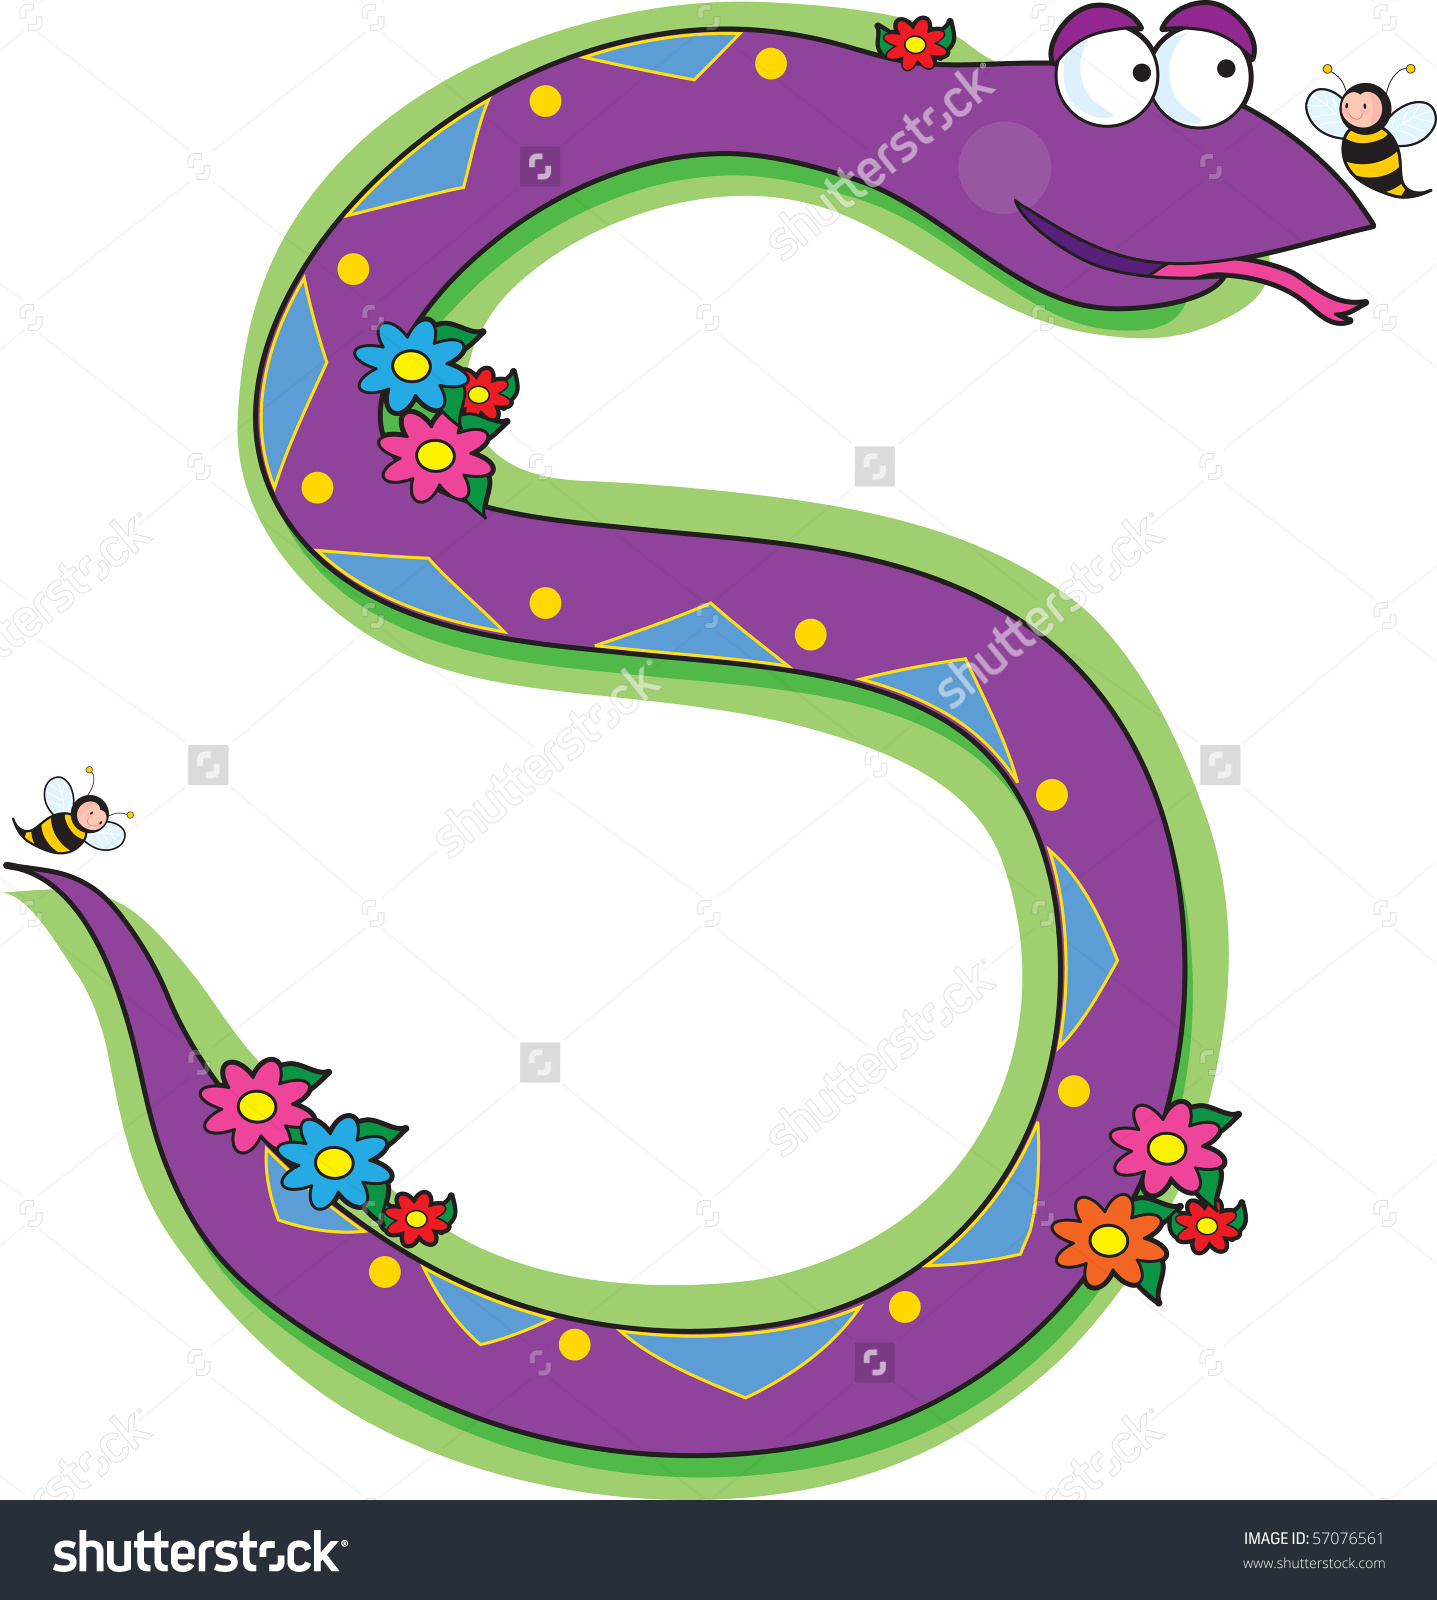 A Snake In A Garden Looking At A Bee. It Is Shaped Like The Letter.